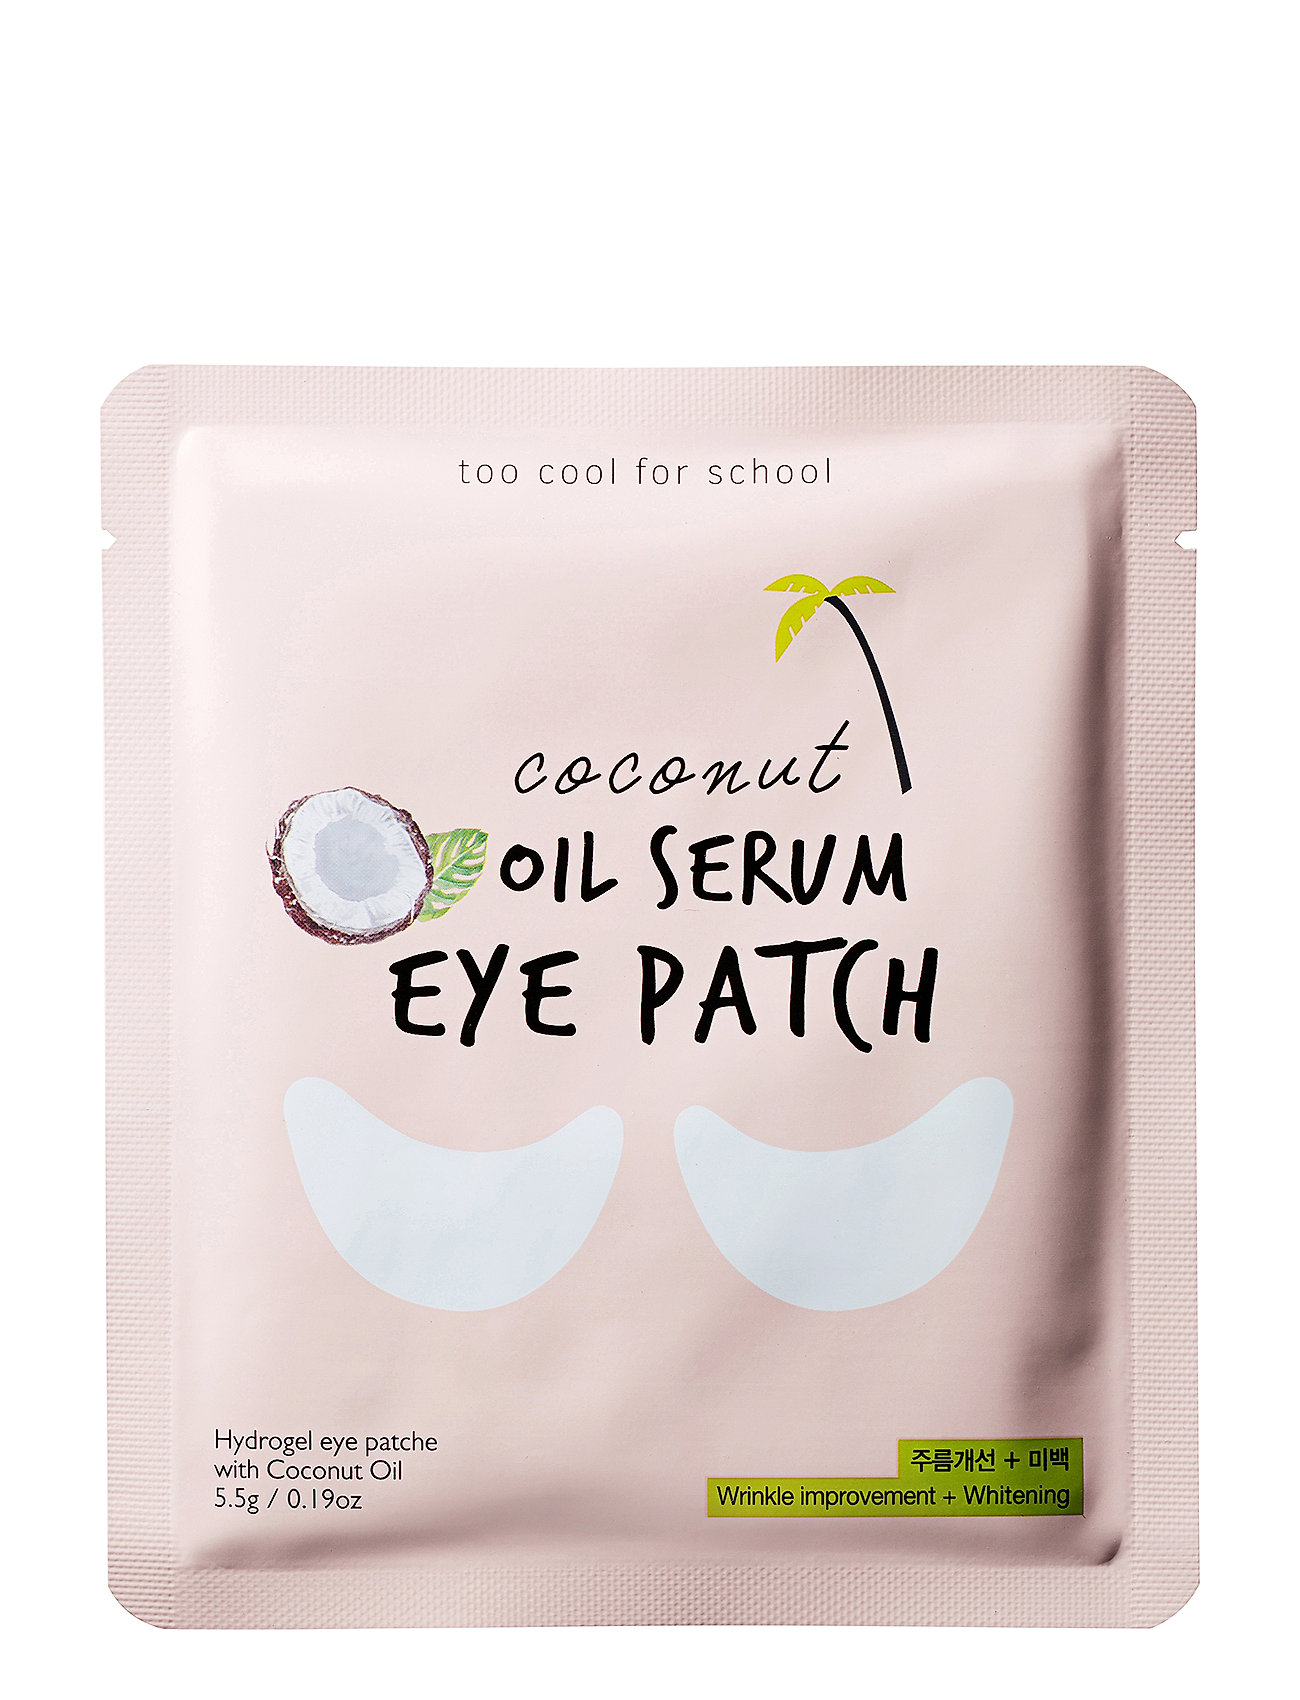 Too Cool For School Too Cool For School Coconut Oil Serum Eye Patch - CLEAR